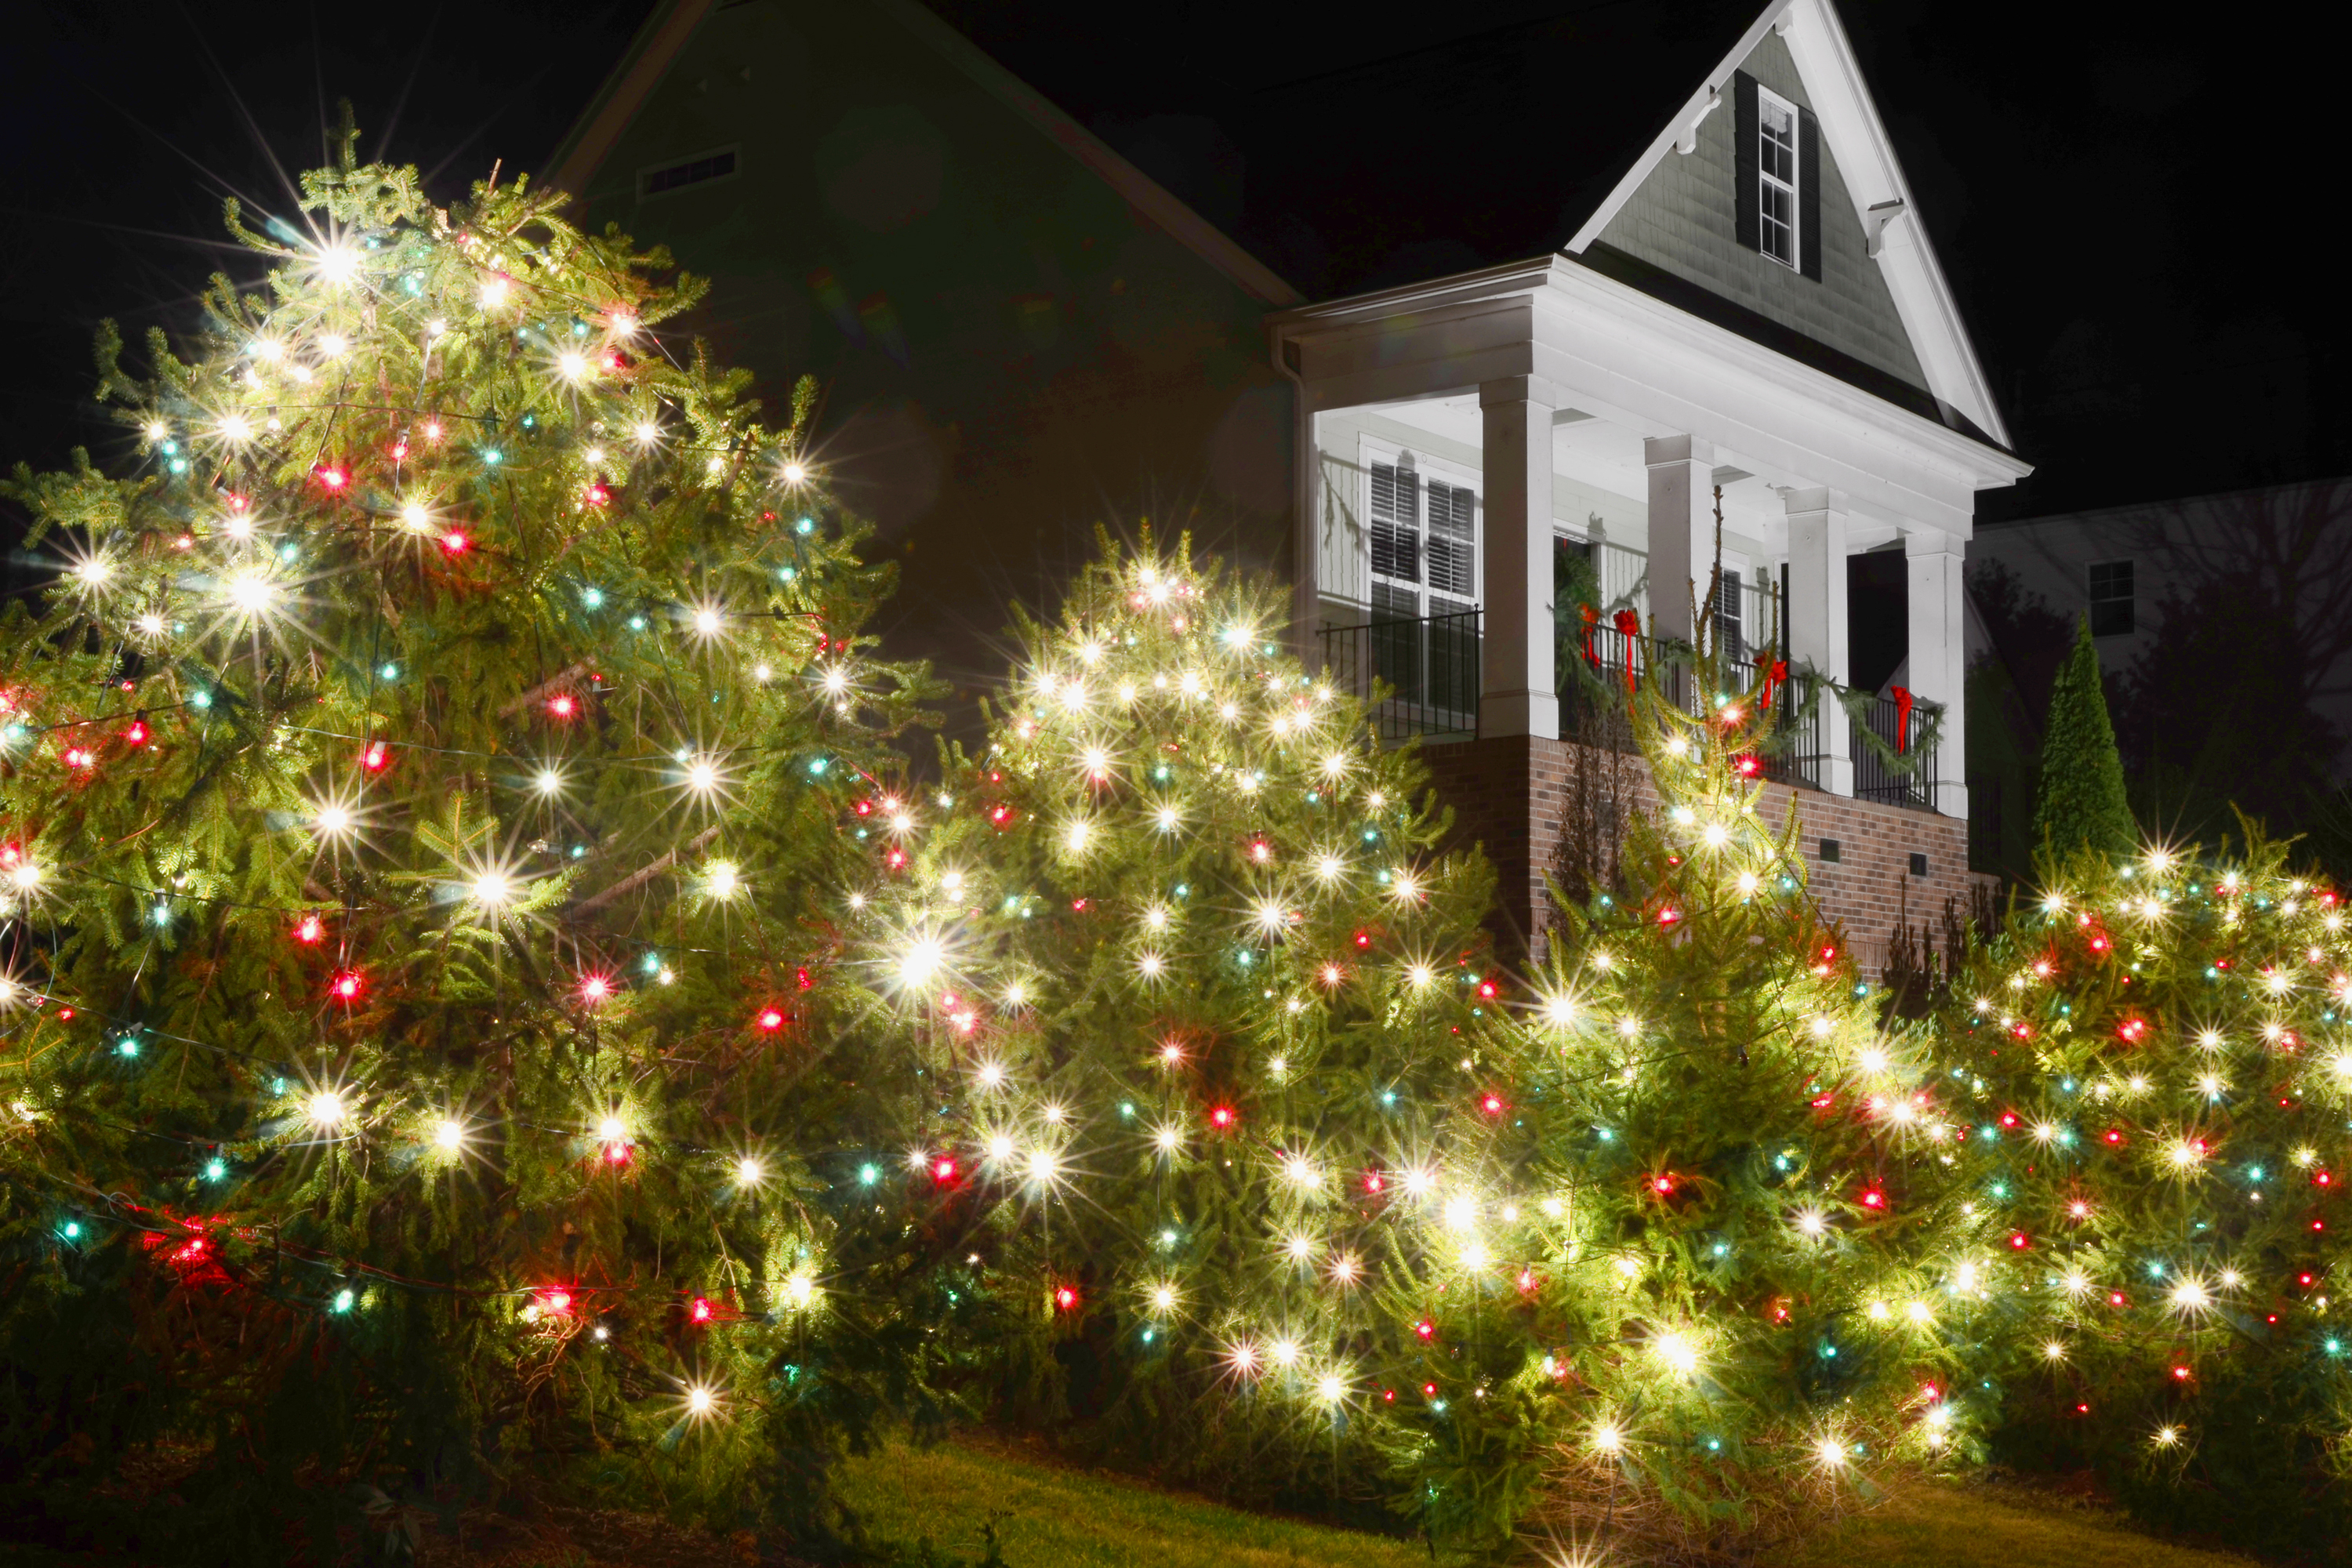 Holiday lighting for business let us handle your holiday needs we can add a festive spin to any holiday you can think of including hanukkah kwanza new years day halloween and even aloadofball Images